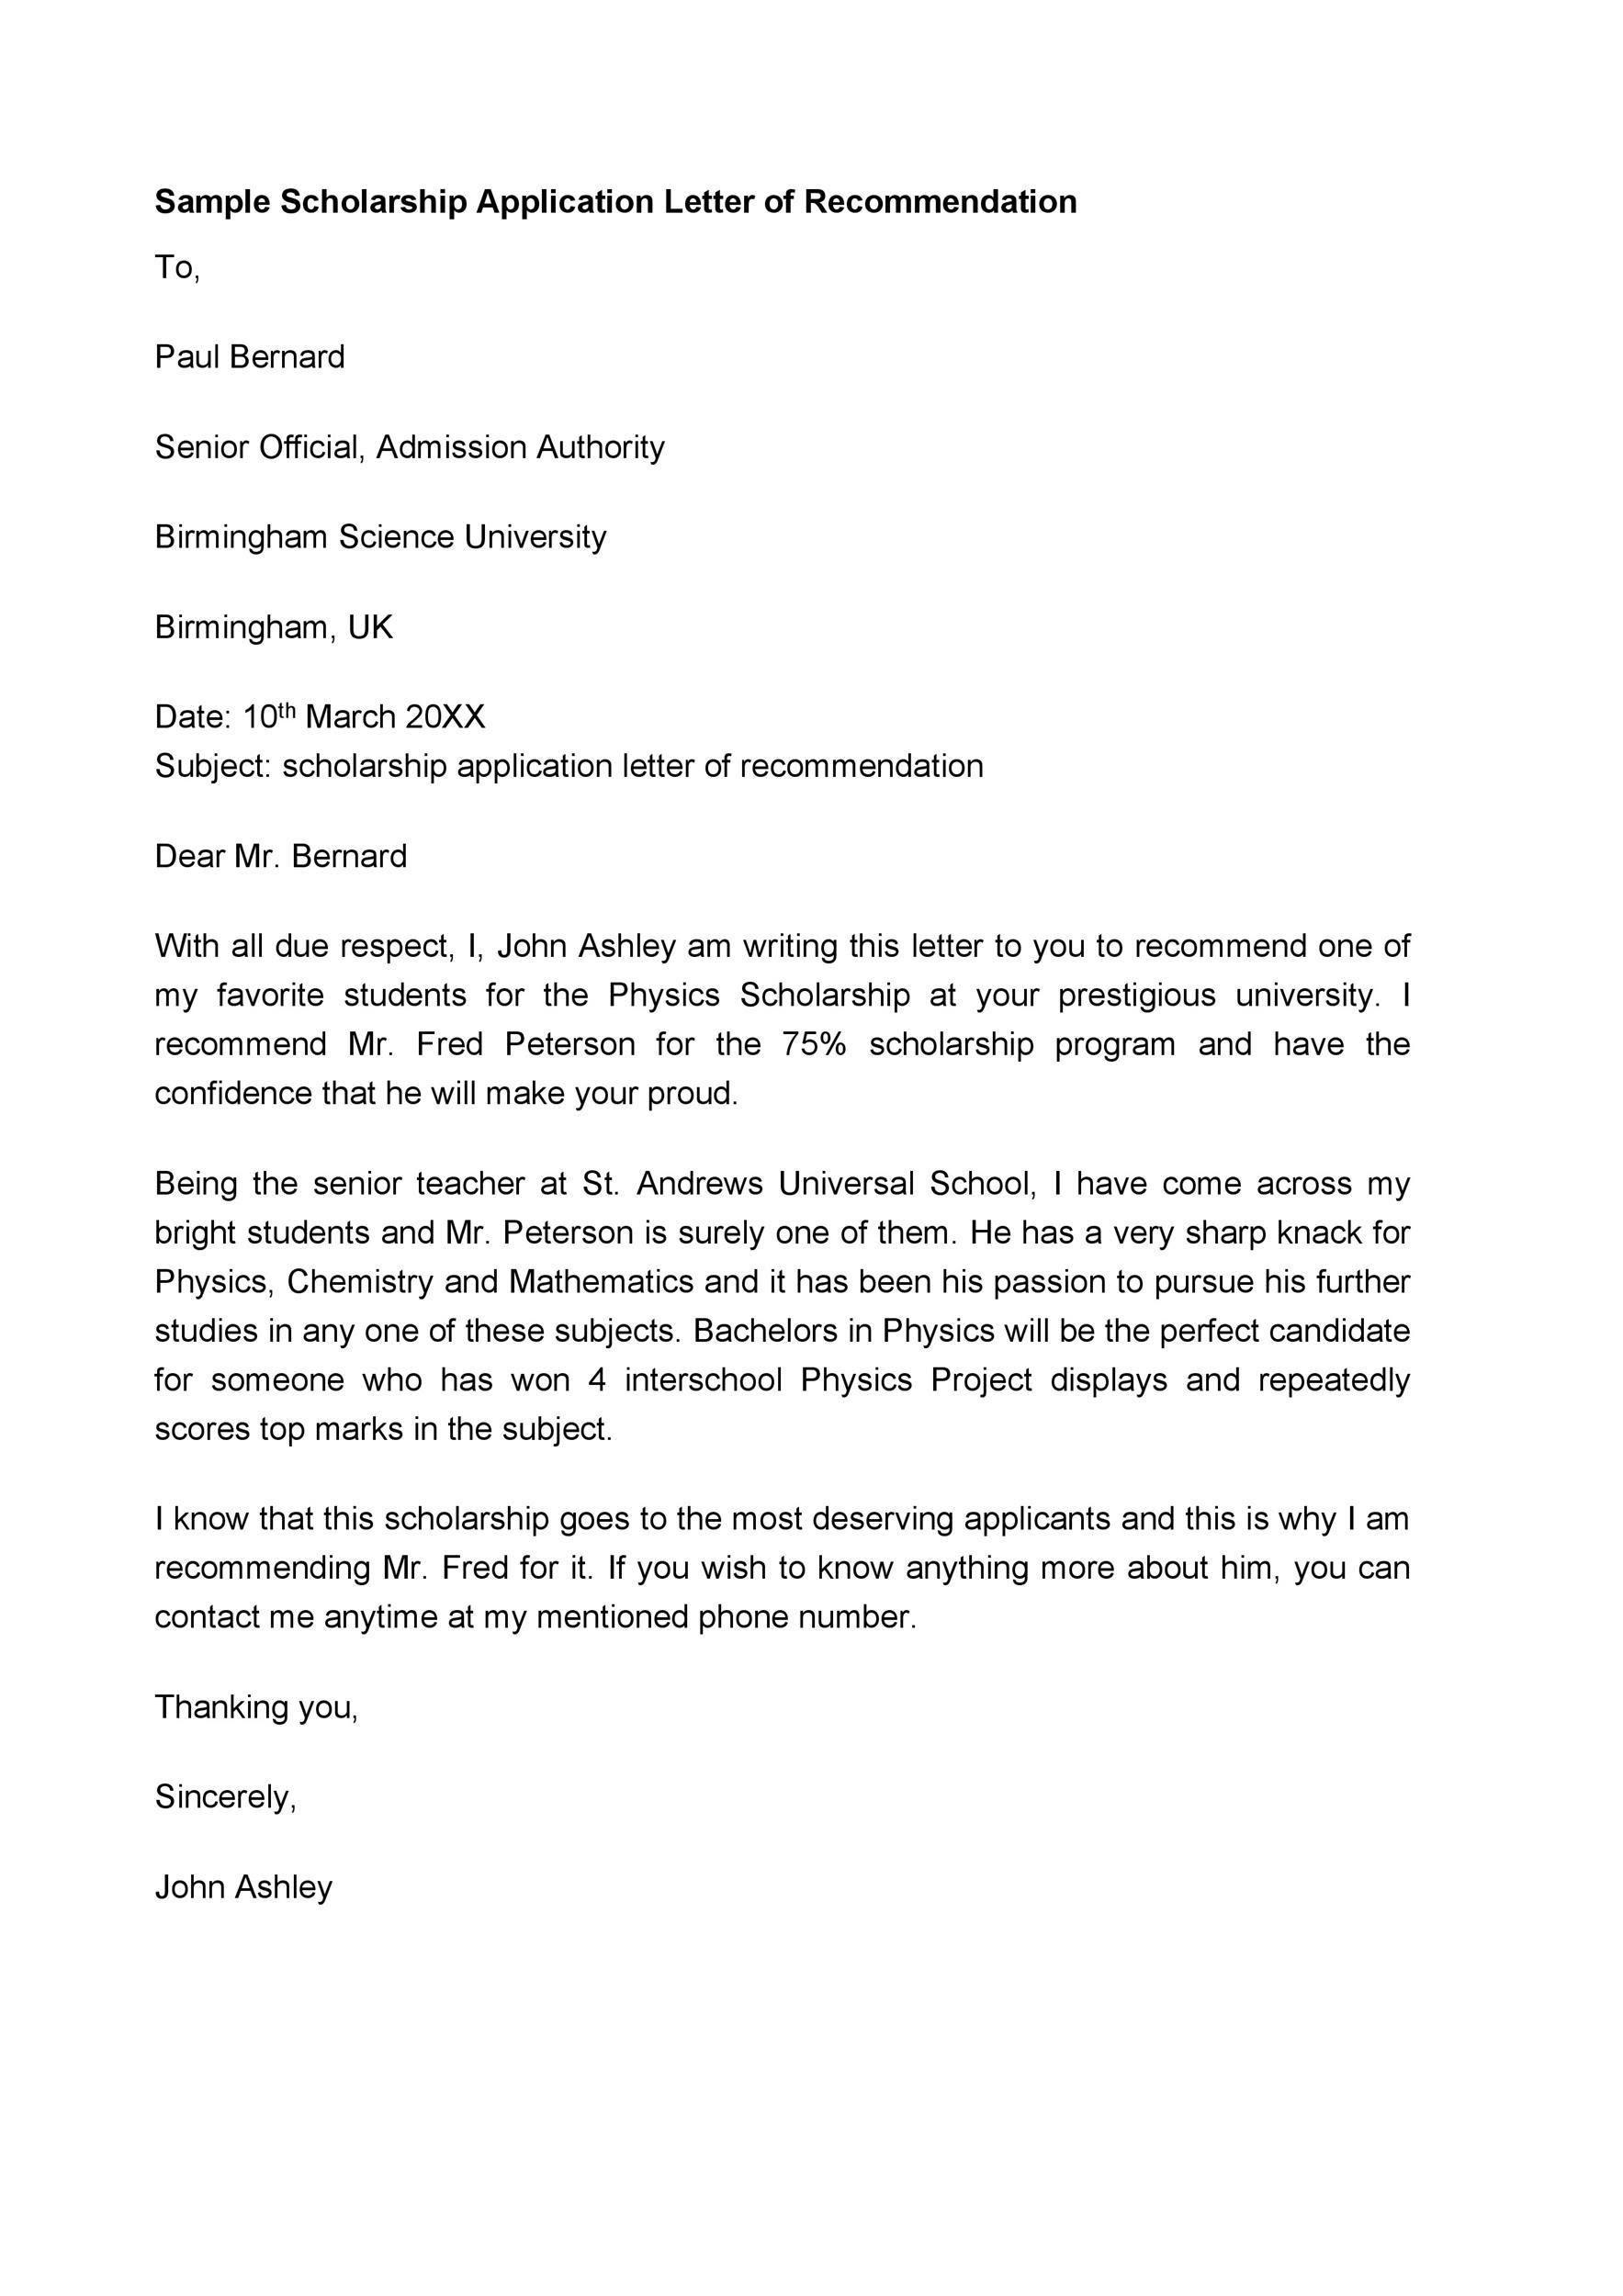 Teacher Letter Of Recommendation Template from lh6.googleusercontent.com